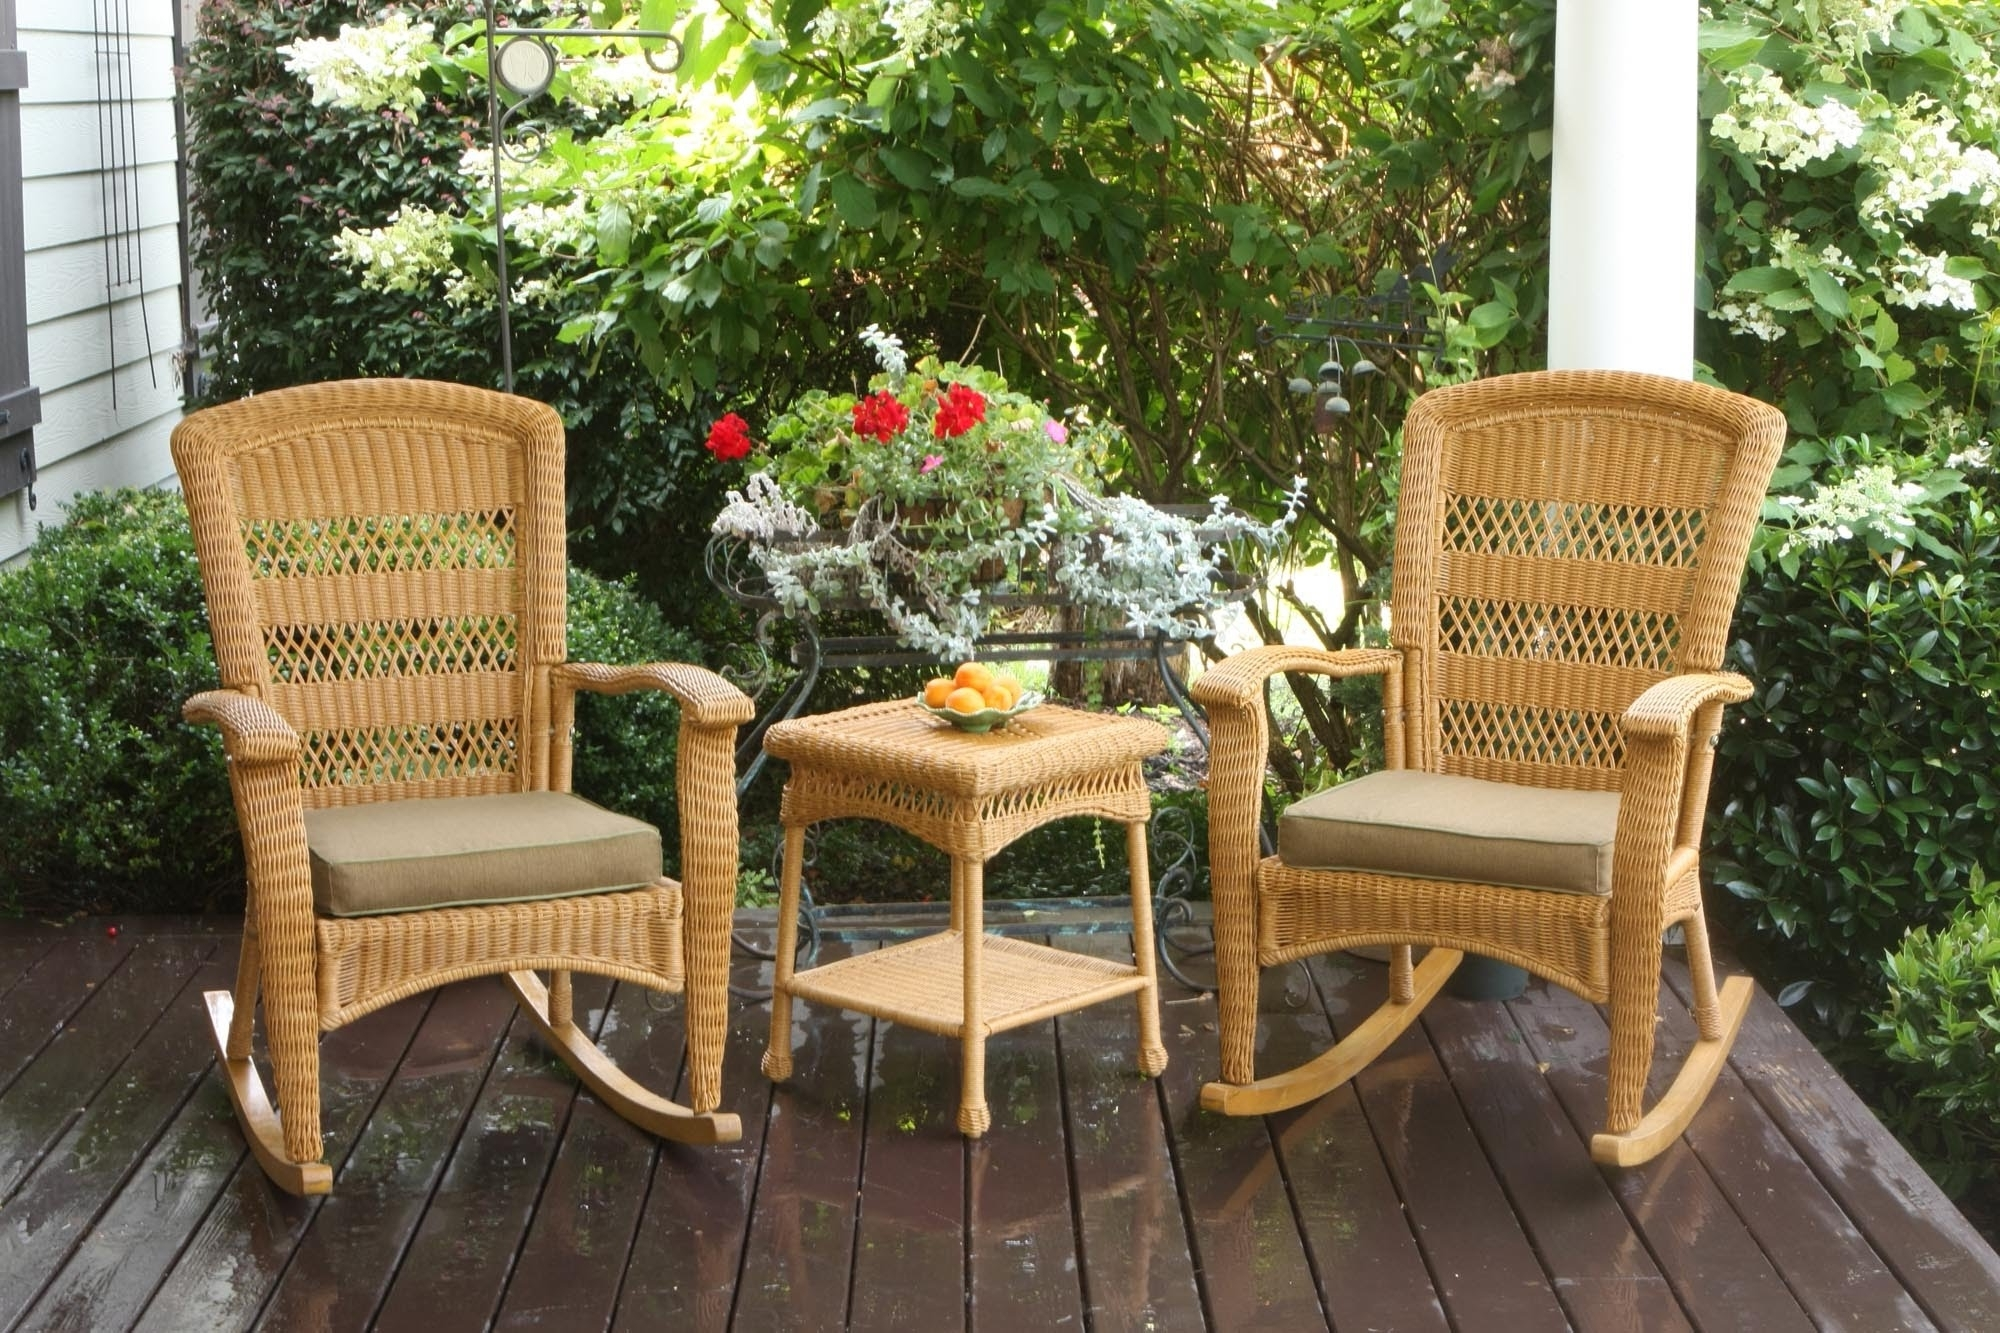 Portside Plantation Rocking Chair Set Tortuga Outdoor – Youtube Regarding 2018 Outdoor Wicker Rocking Chairs With Cushions (View 7 of 15)